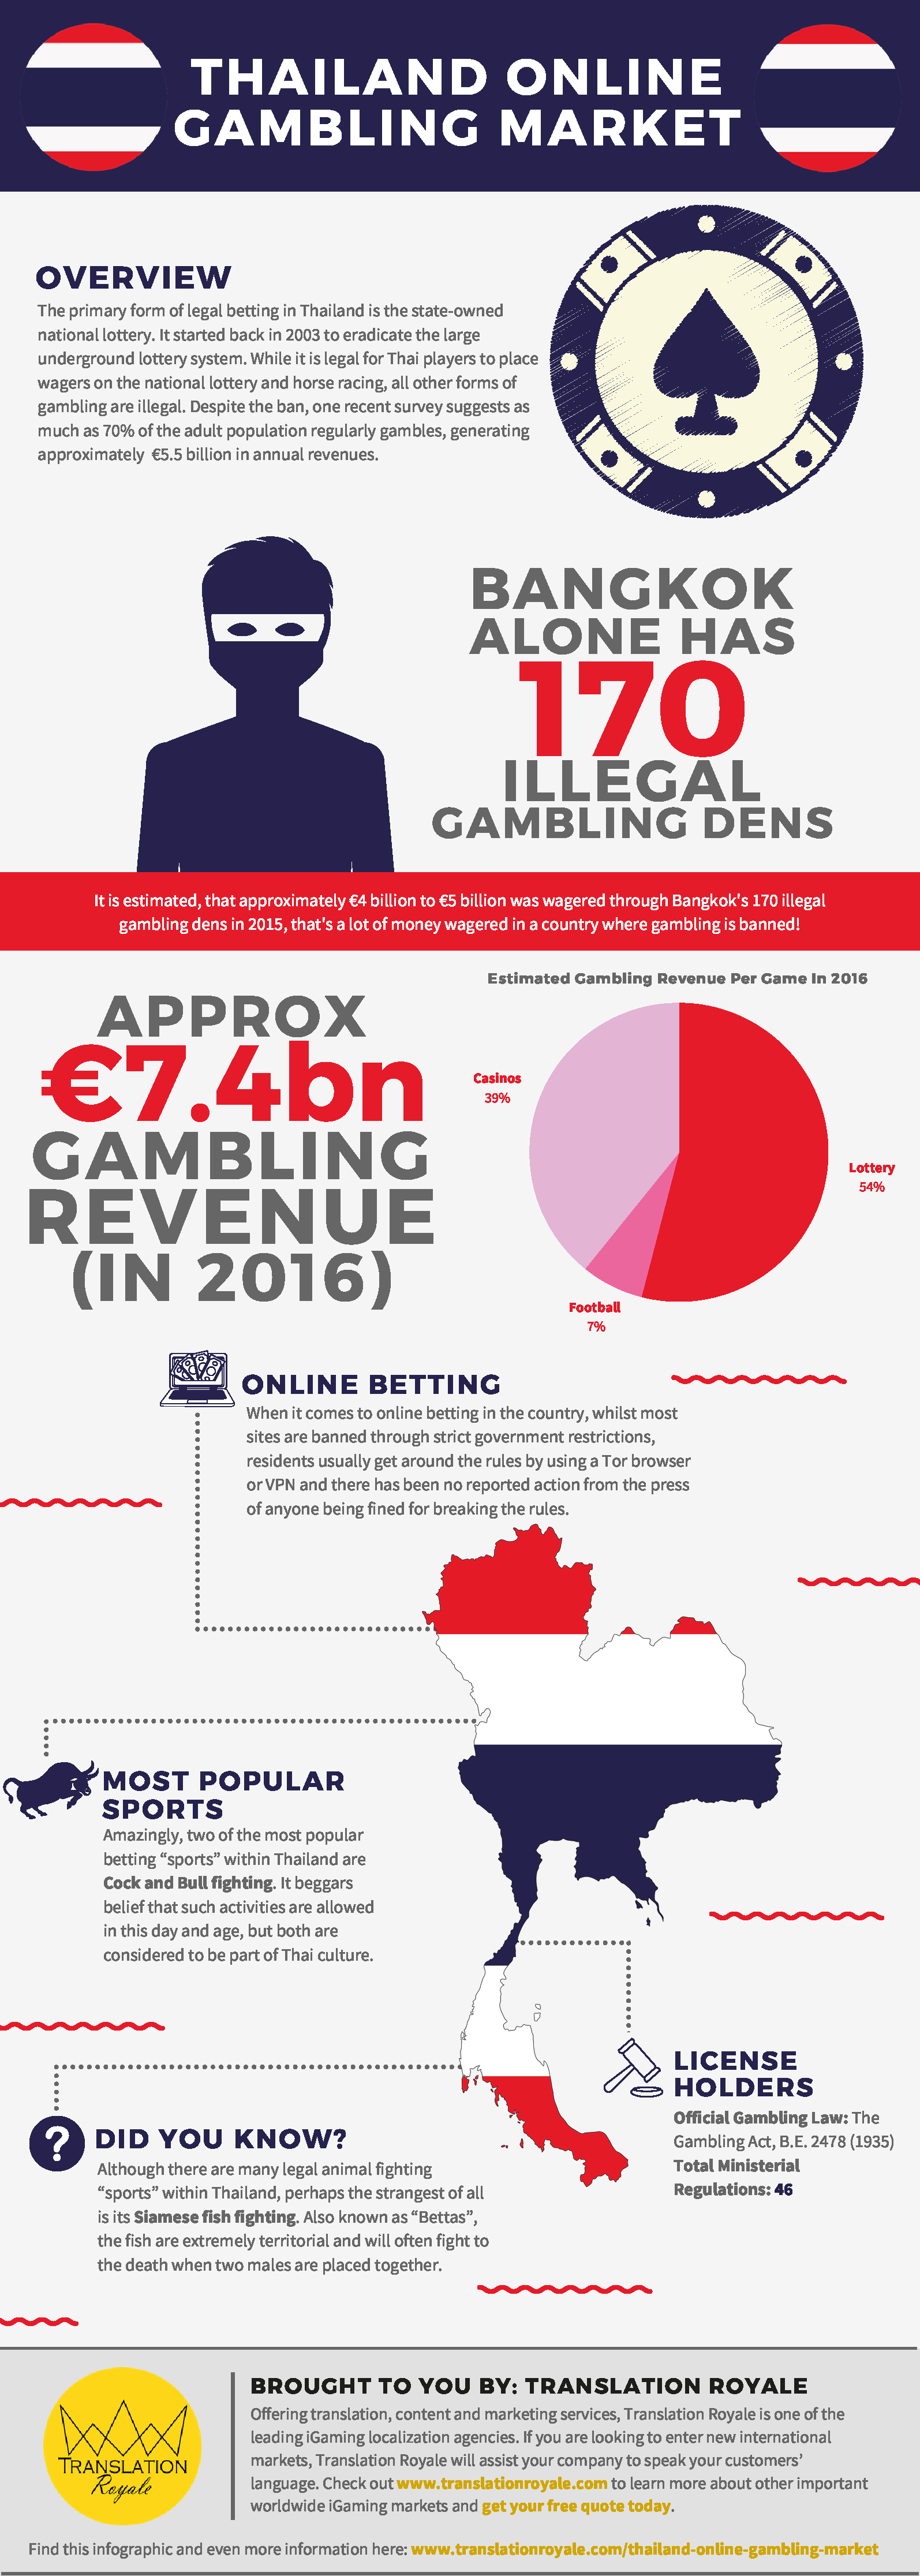 Thailand Online Gambling Market Infographic